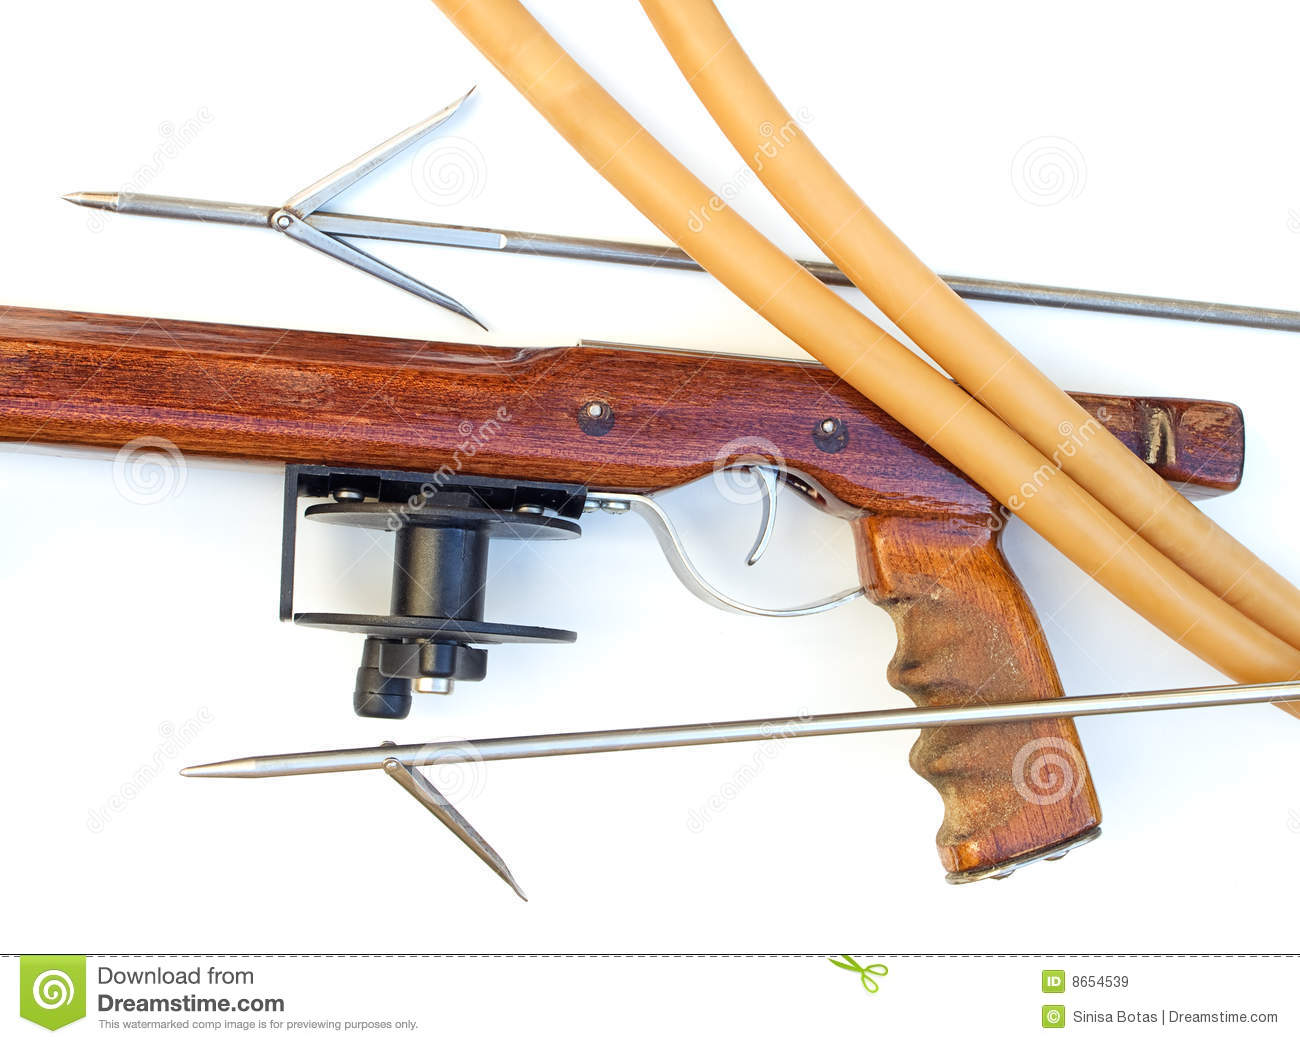 Handmade wooden speargun with equipment on a clear background.